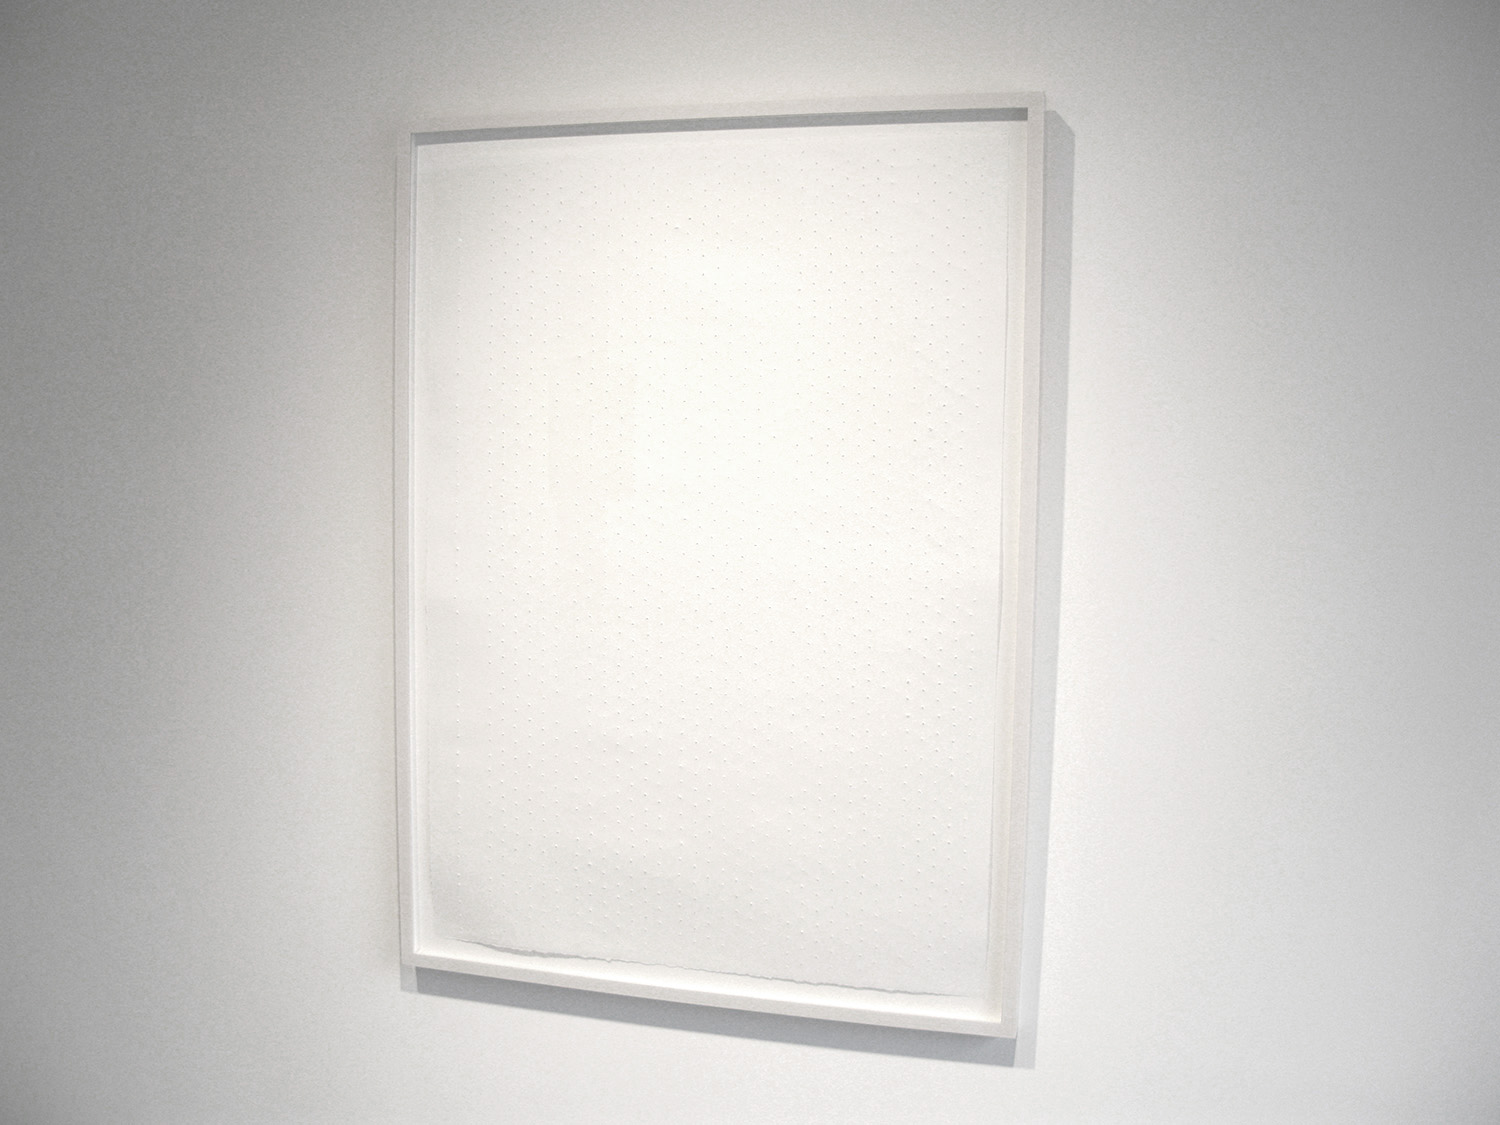 Artist's Proof, 2007, stonehenge paper, 45 x33 inches